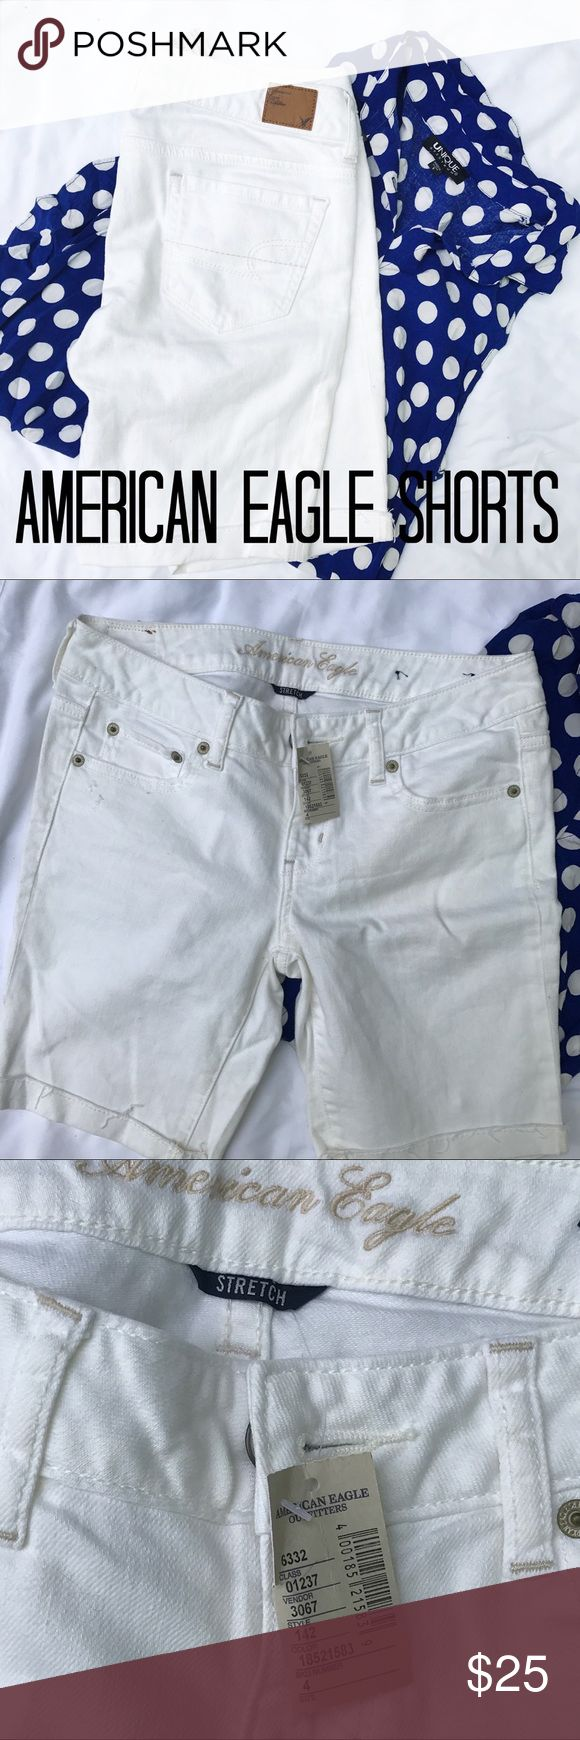 💙NEW💙 AE White Shorts Never worn, purchased online and realized I wanted shorter length. These are just the perfect pair of white summer shorts every girl needs as a staple in their wardrobe. American Eagle Outfitters Shorts Jean Shorts